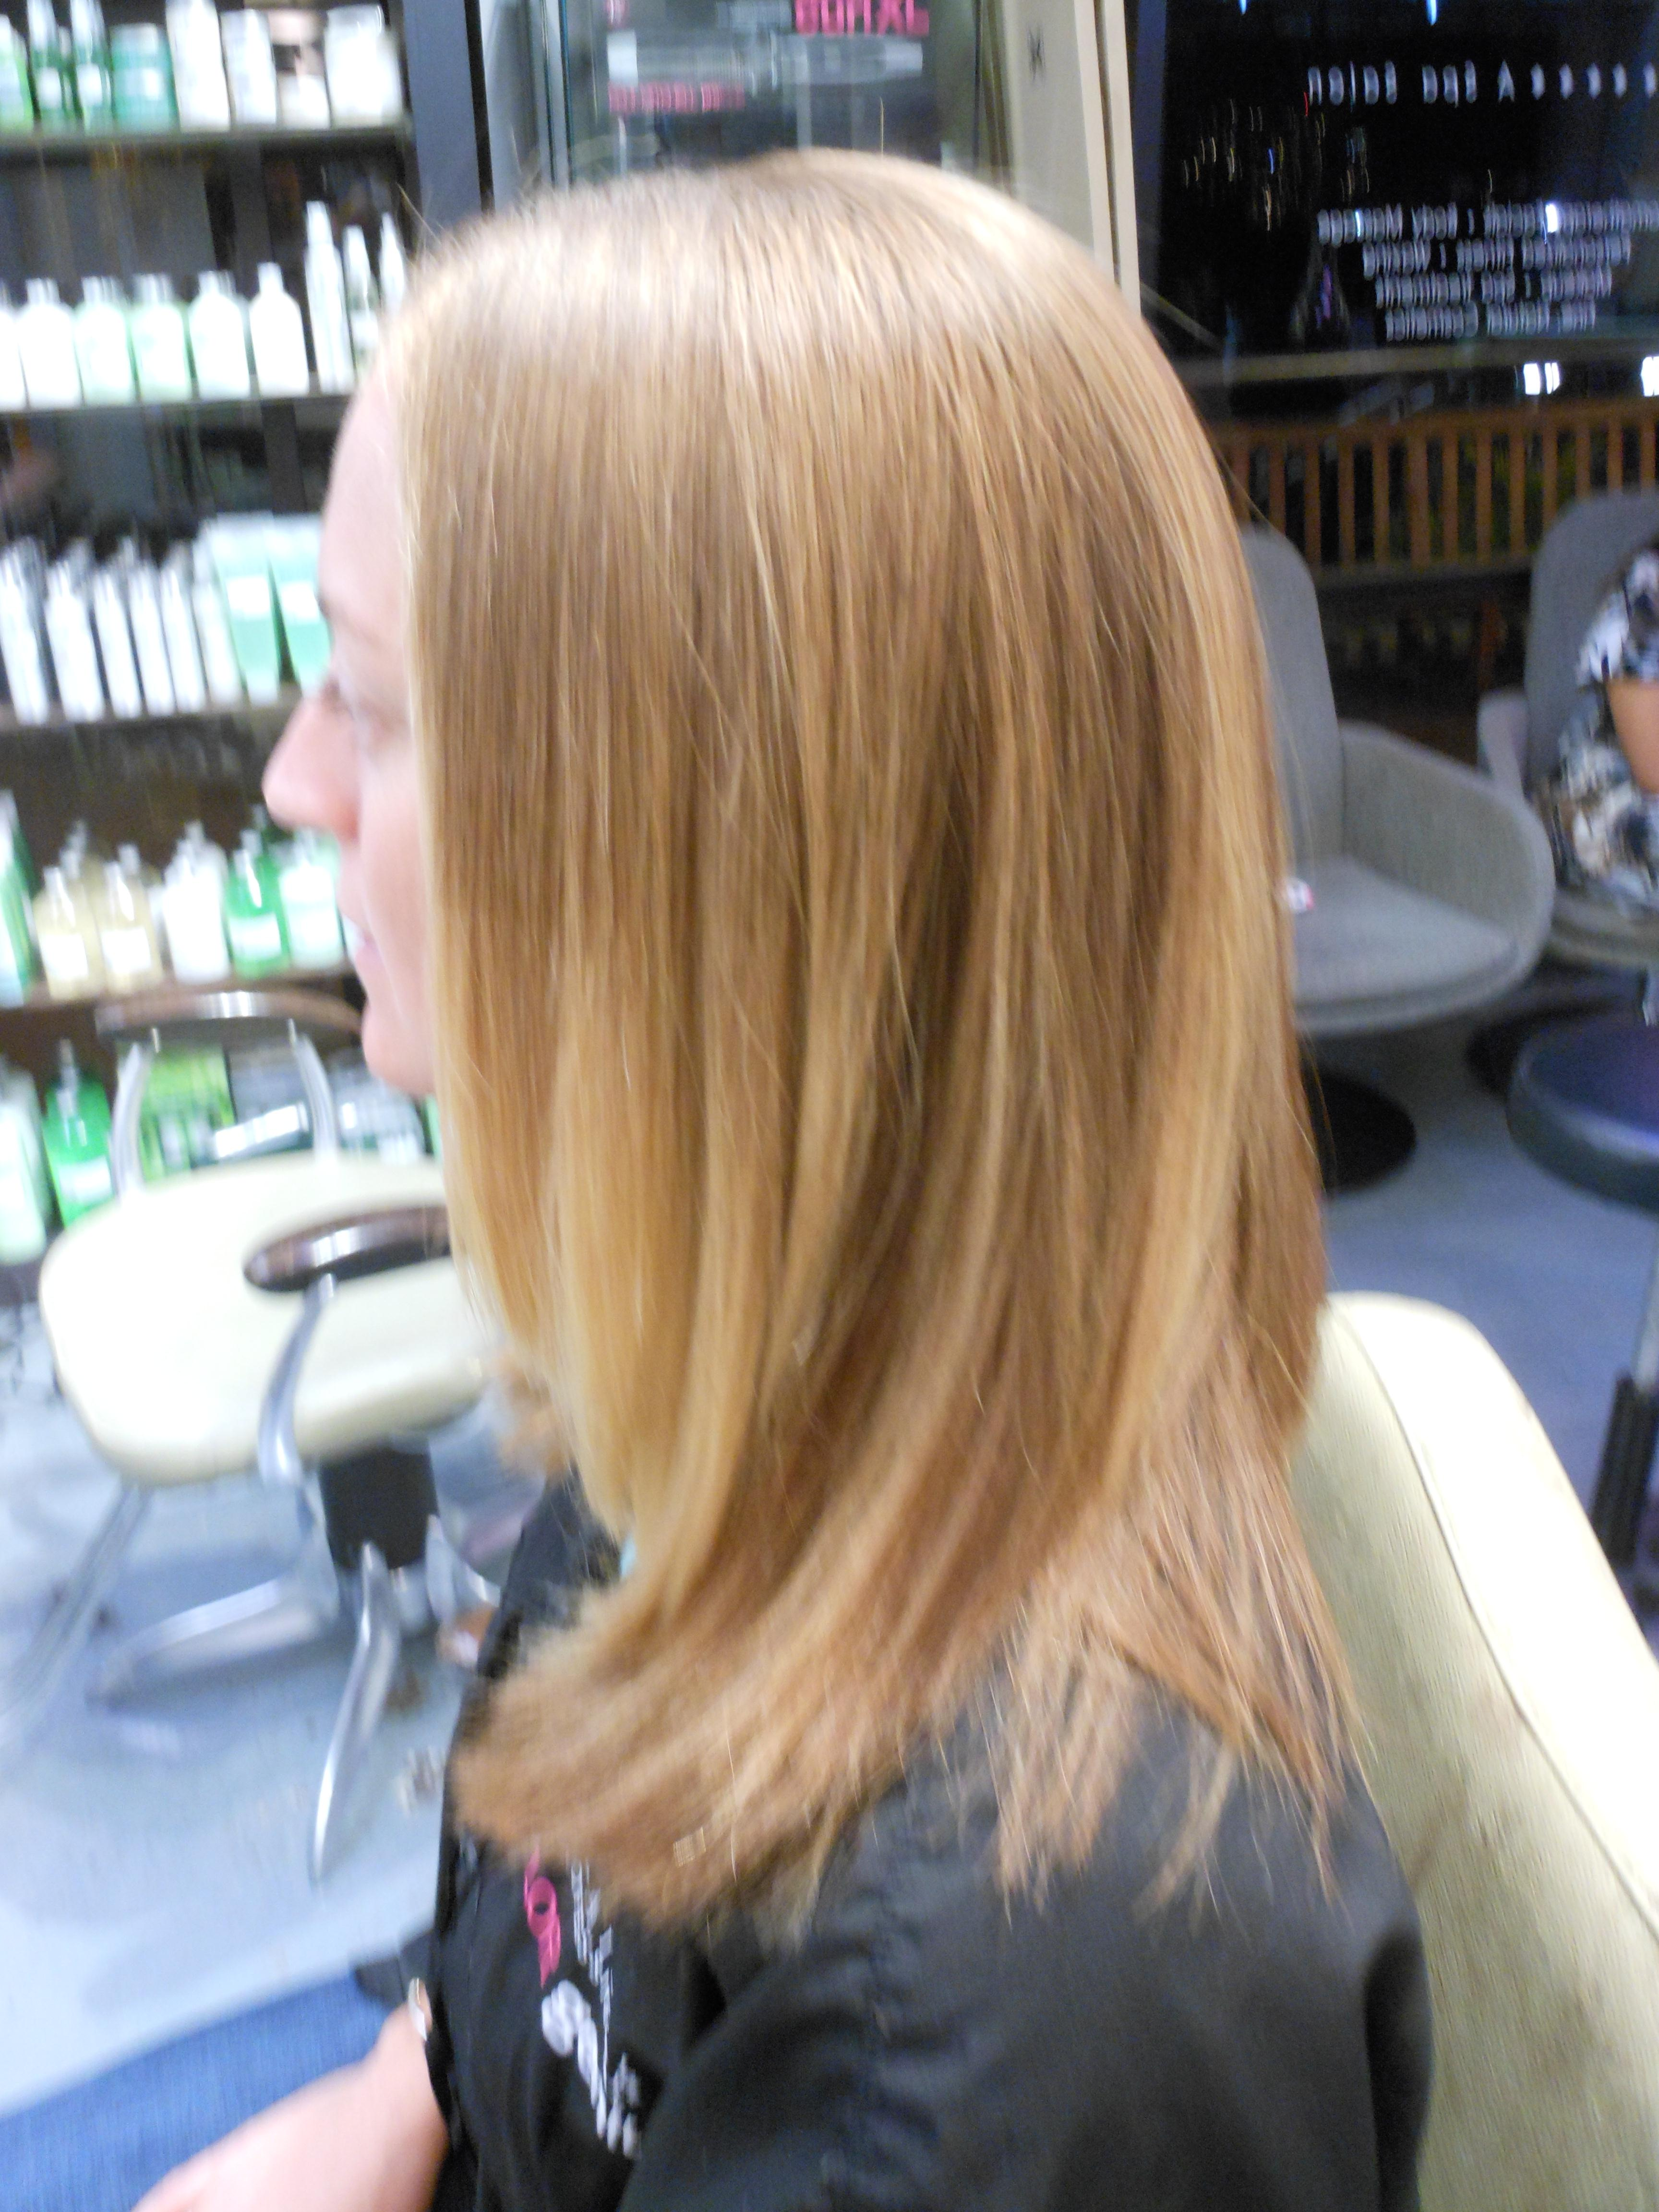 Straight perm groupon - Straight Perm Groupon 5